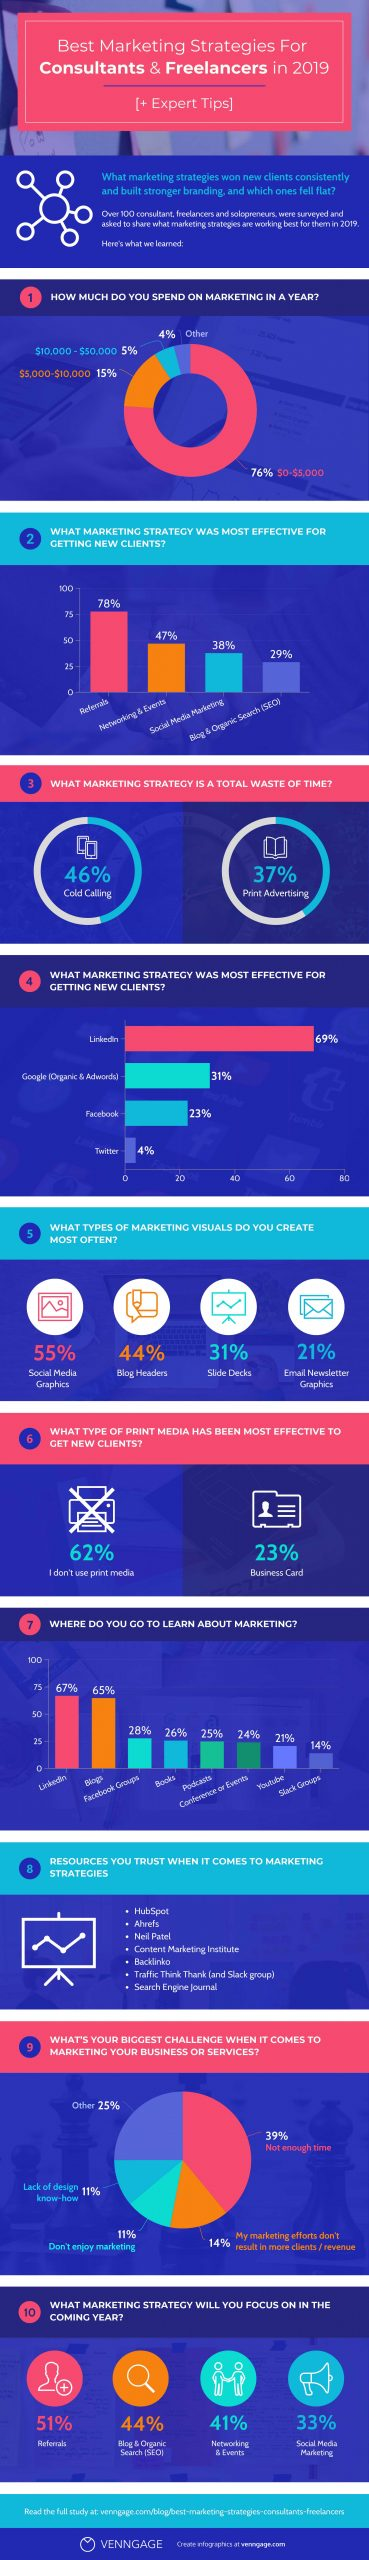 Best Marketing Strategies for Consultants and Freelancers in 2019 Infographic Image